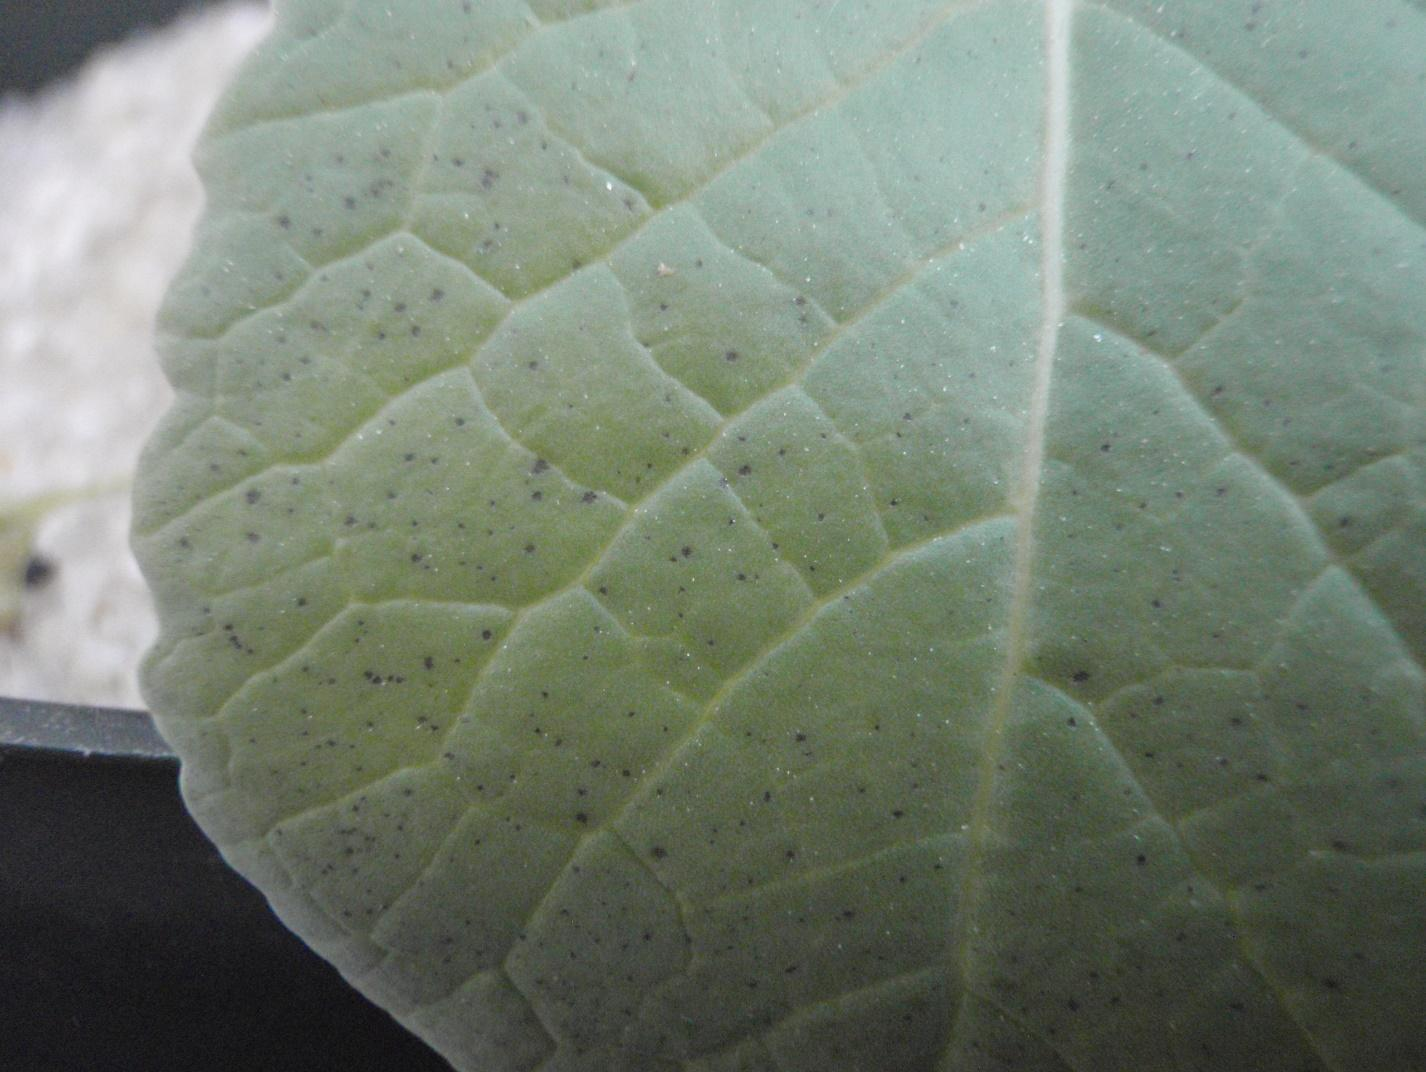 small, circular to angular black spots appeared on the lower foliage and were randomly distributed over the leaf surface. This was a unique symptom seen in carinata and will aid in the identification of phosphorus deficiency.